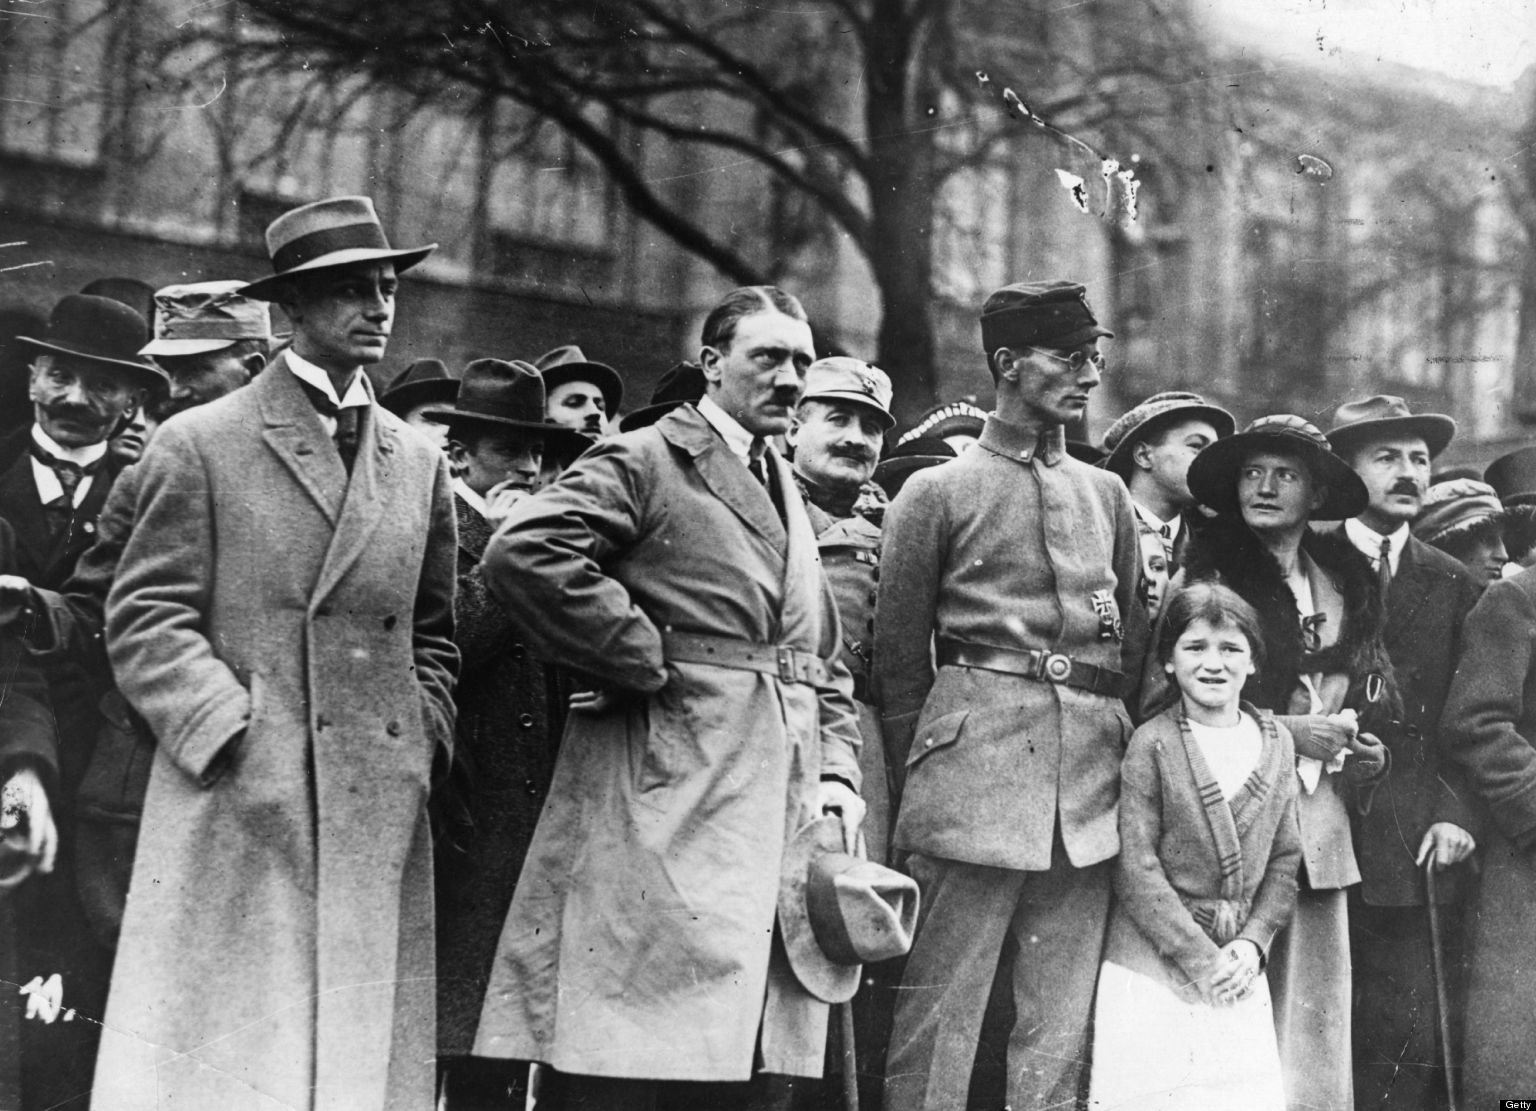 The Munich Putsch 1923